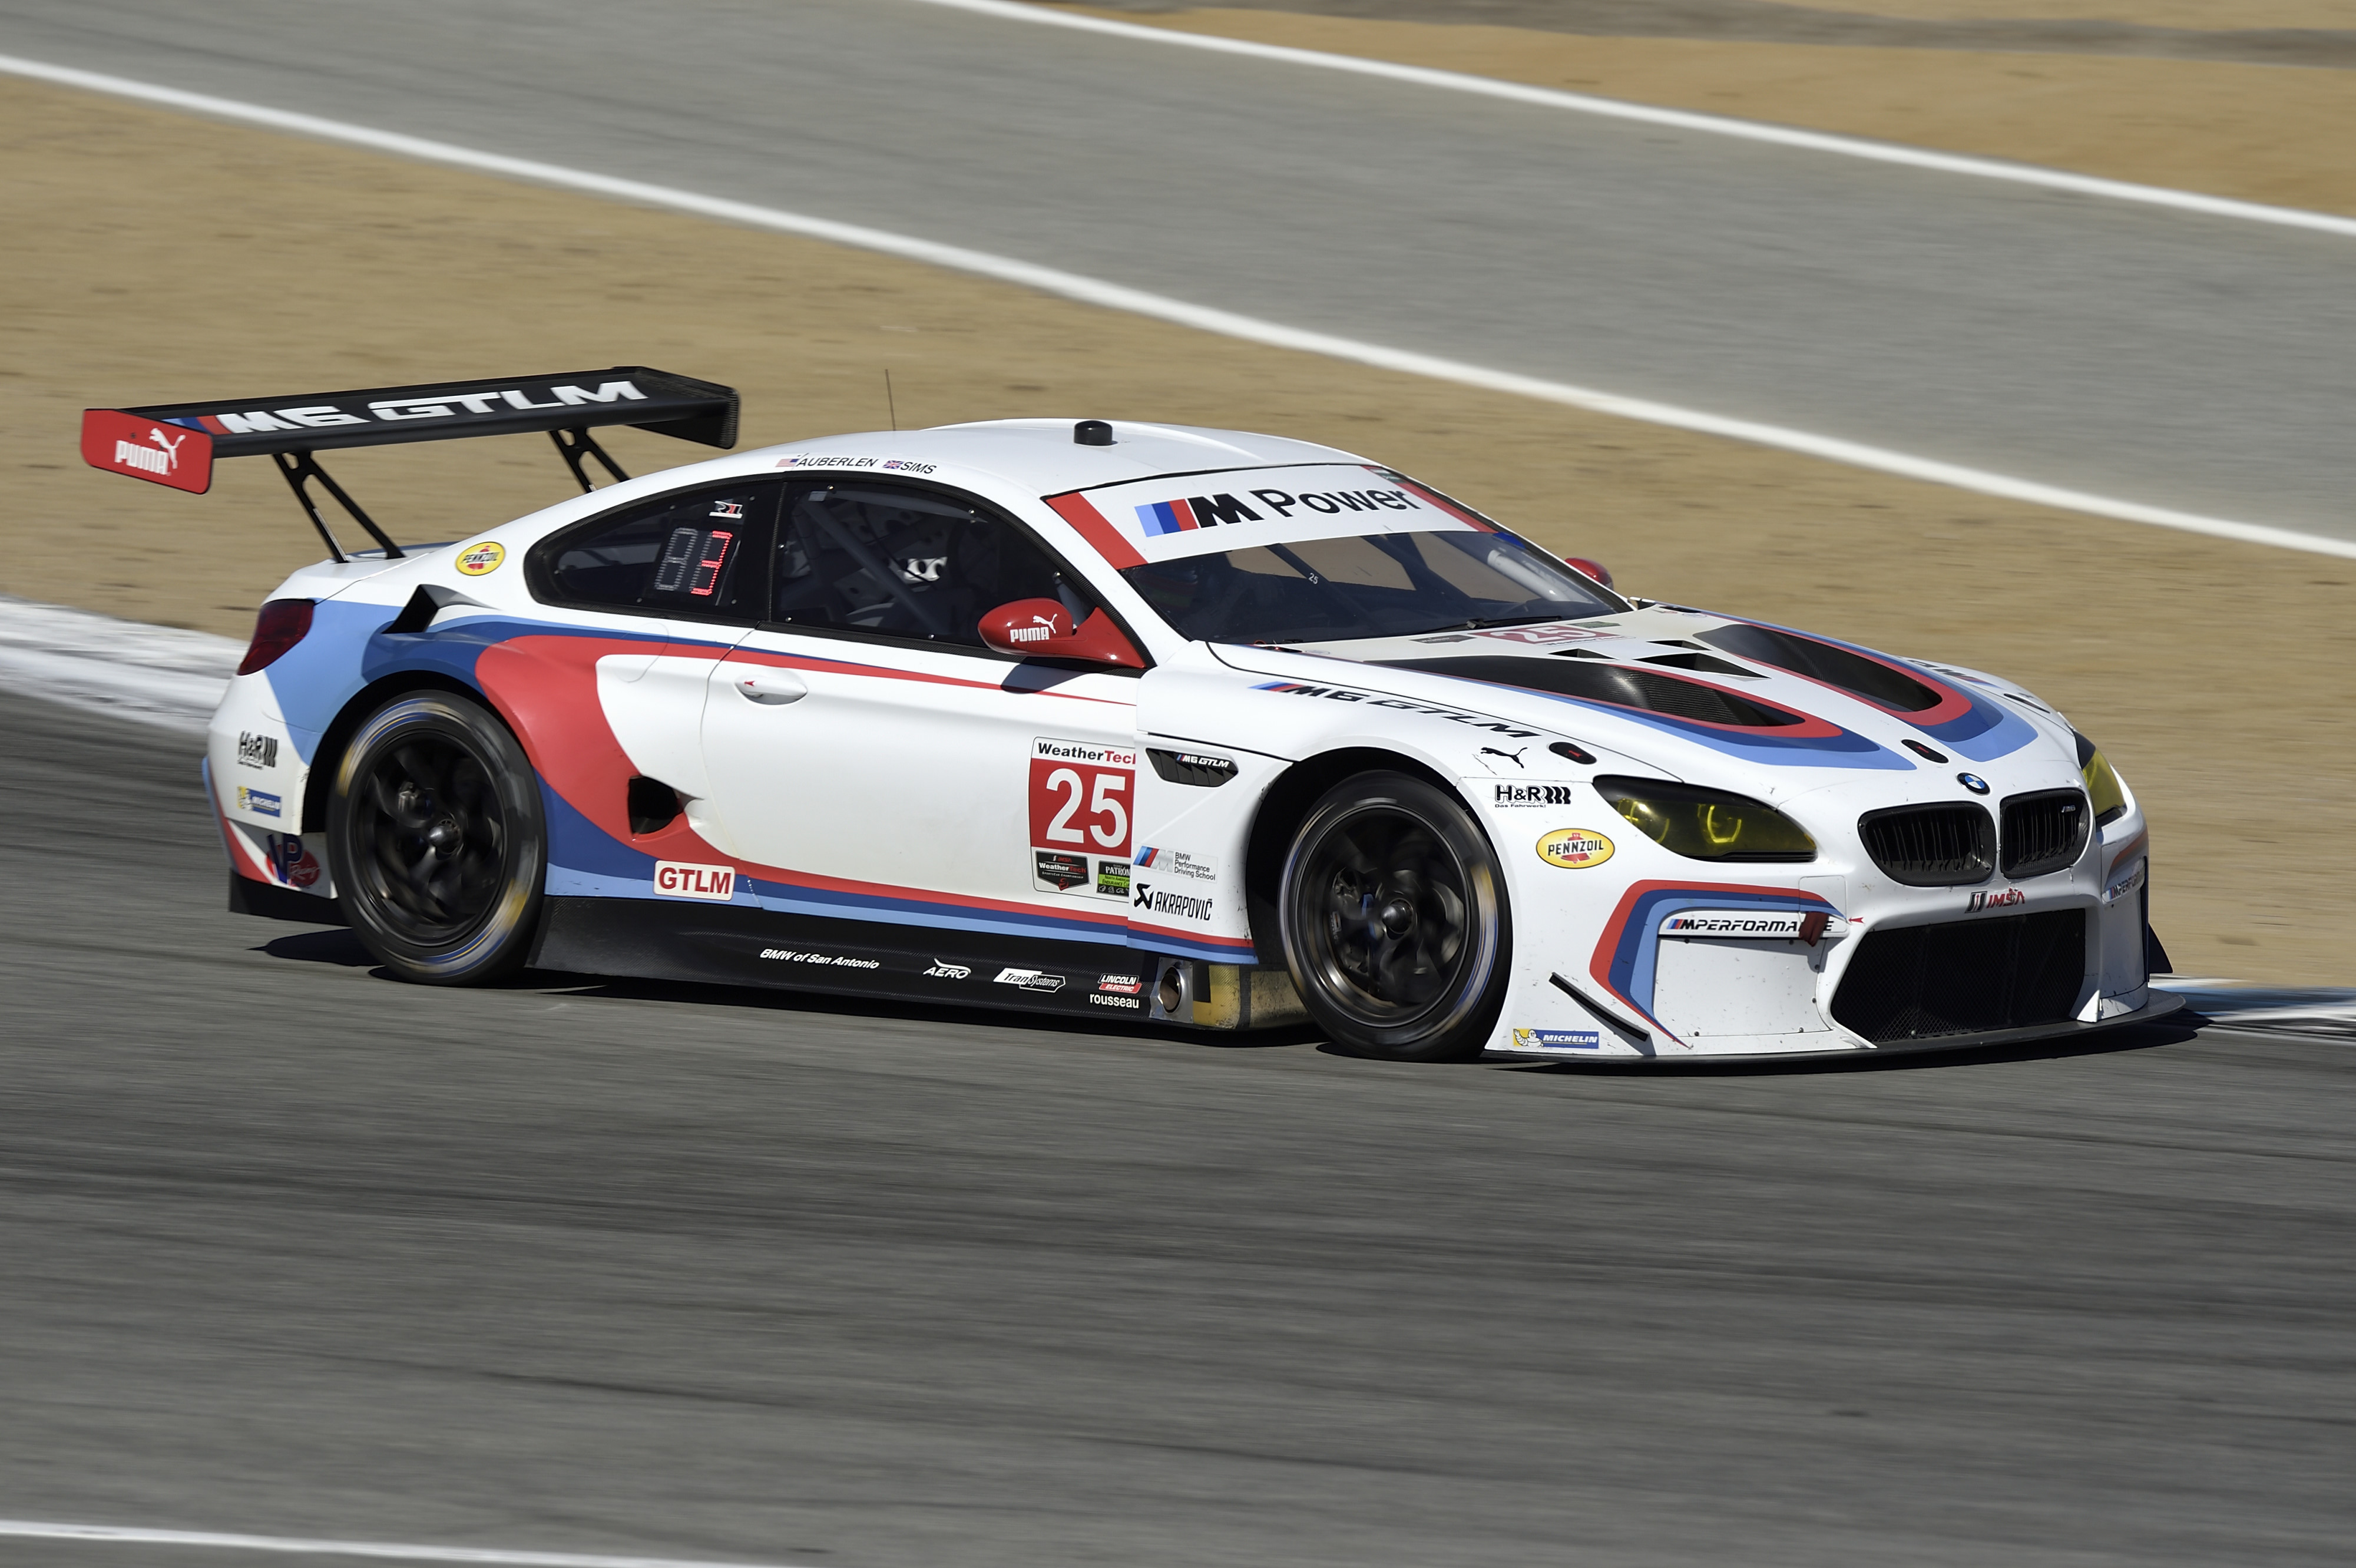 Bmw Team Rll M6 Takes Thrilling Victory At Laguna Seca